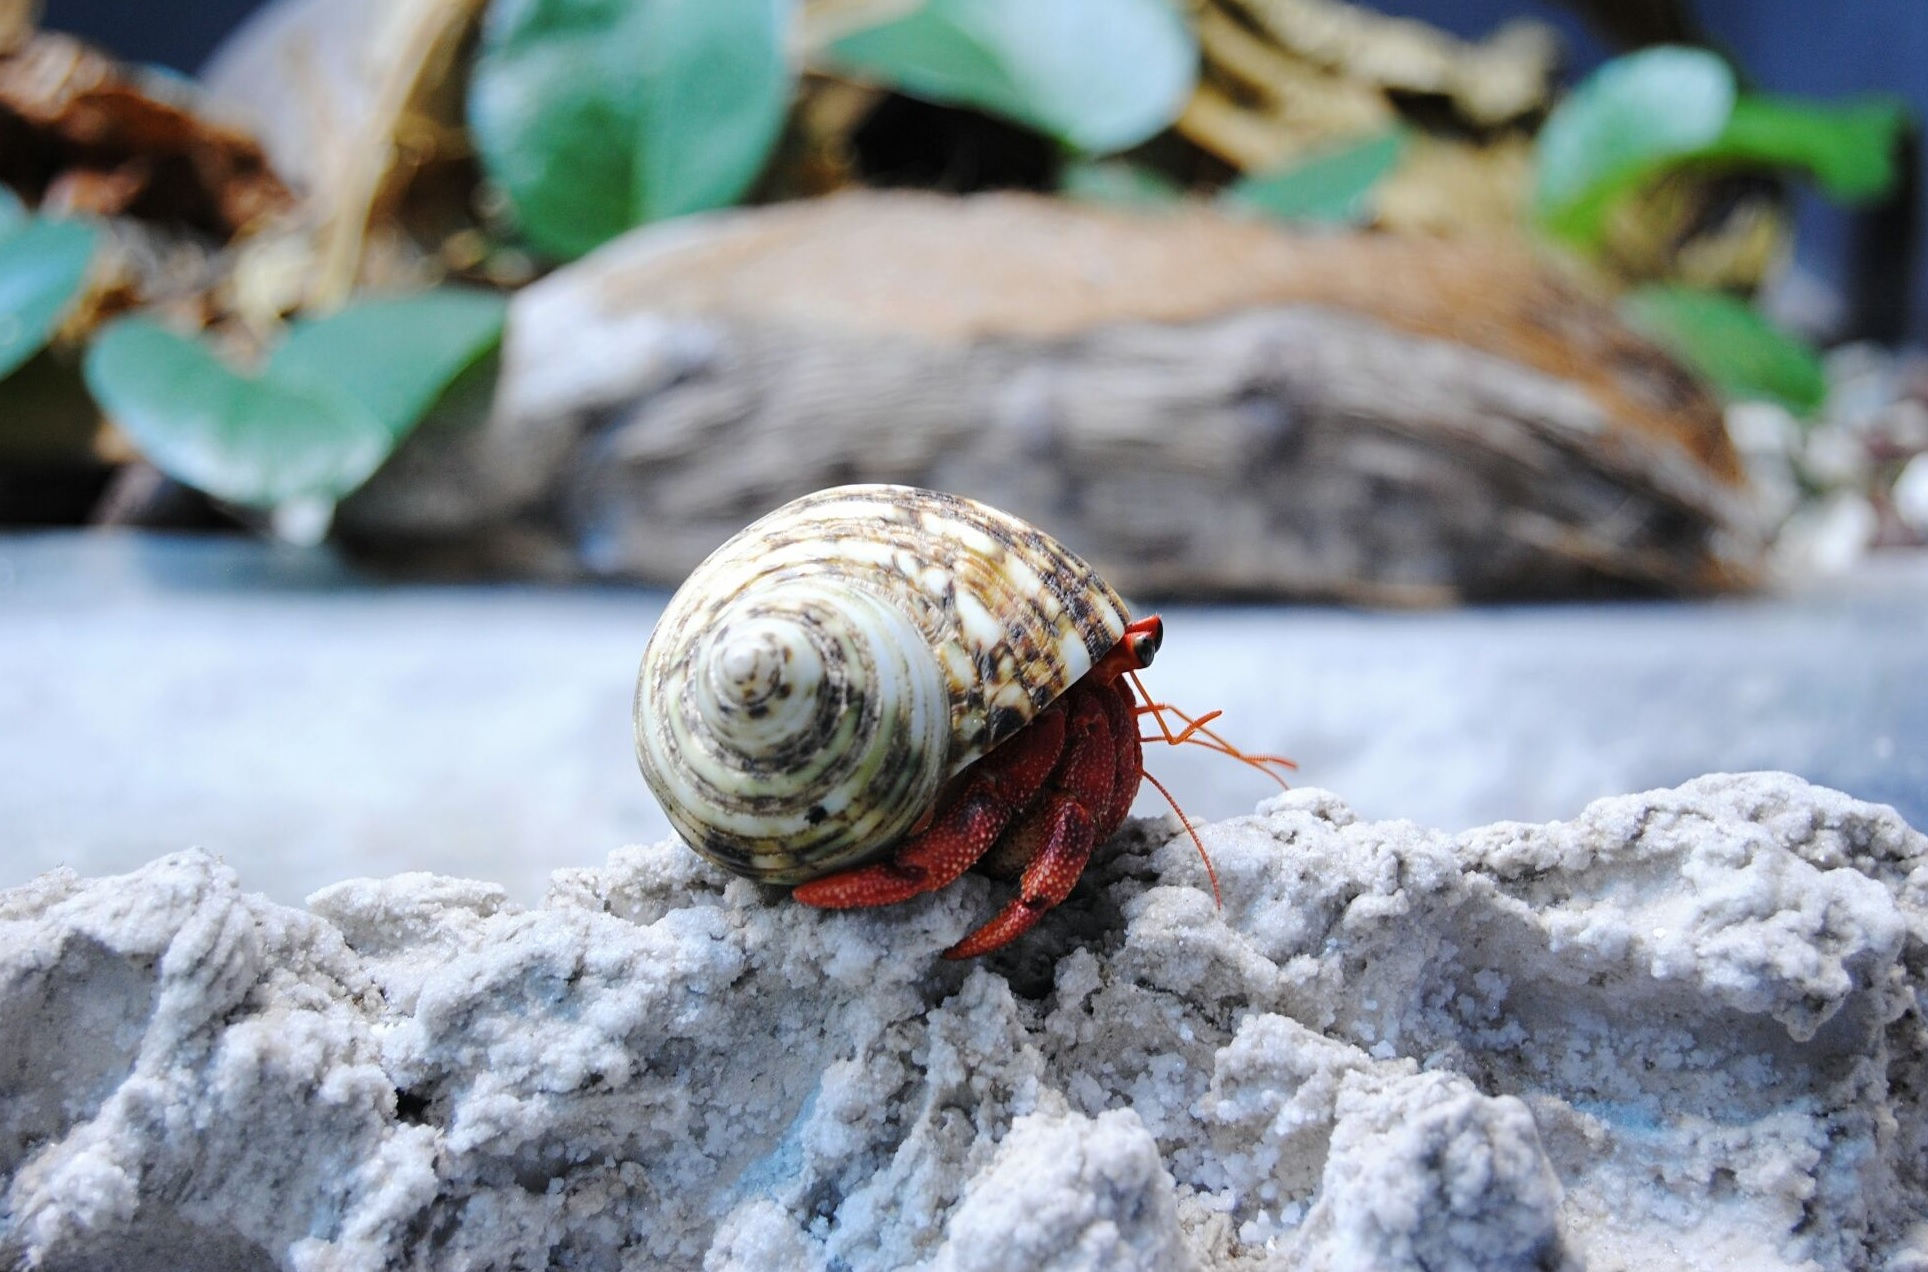 Food and Feeding Guide for Hermit Crabs